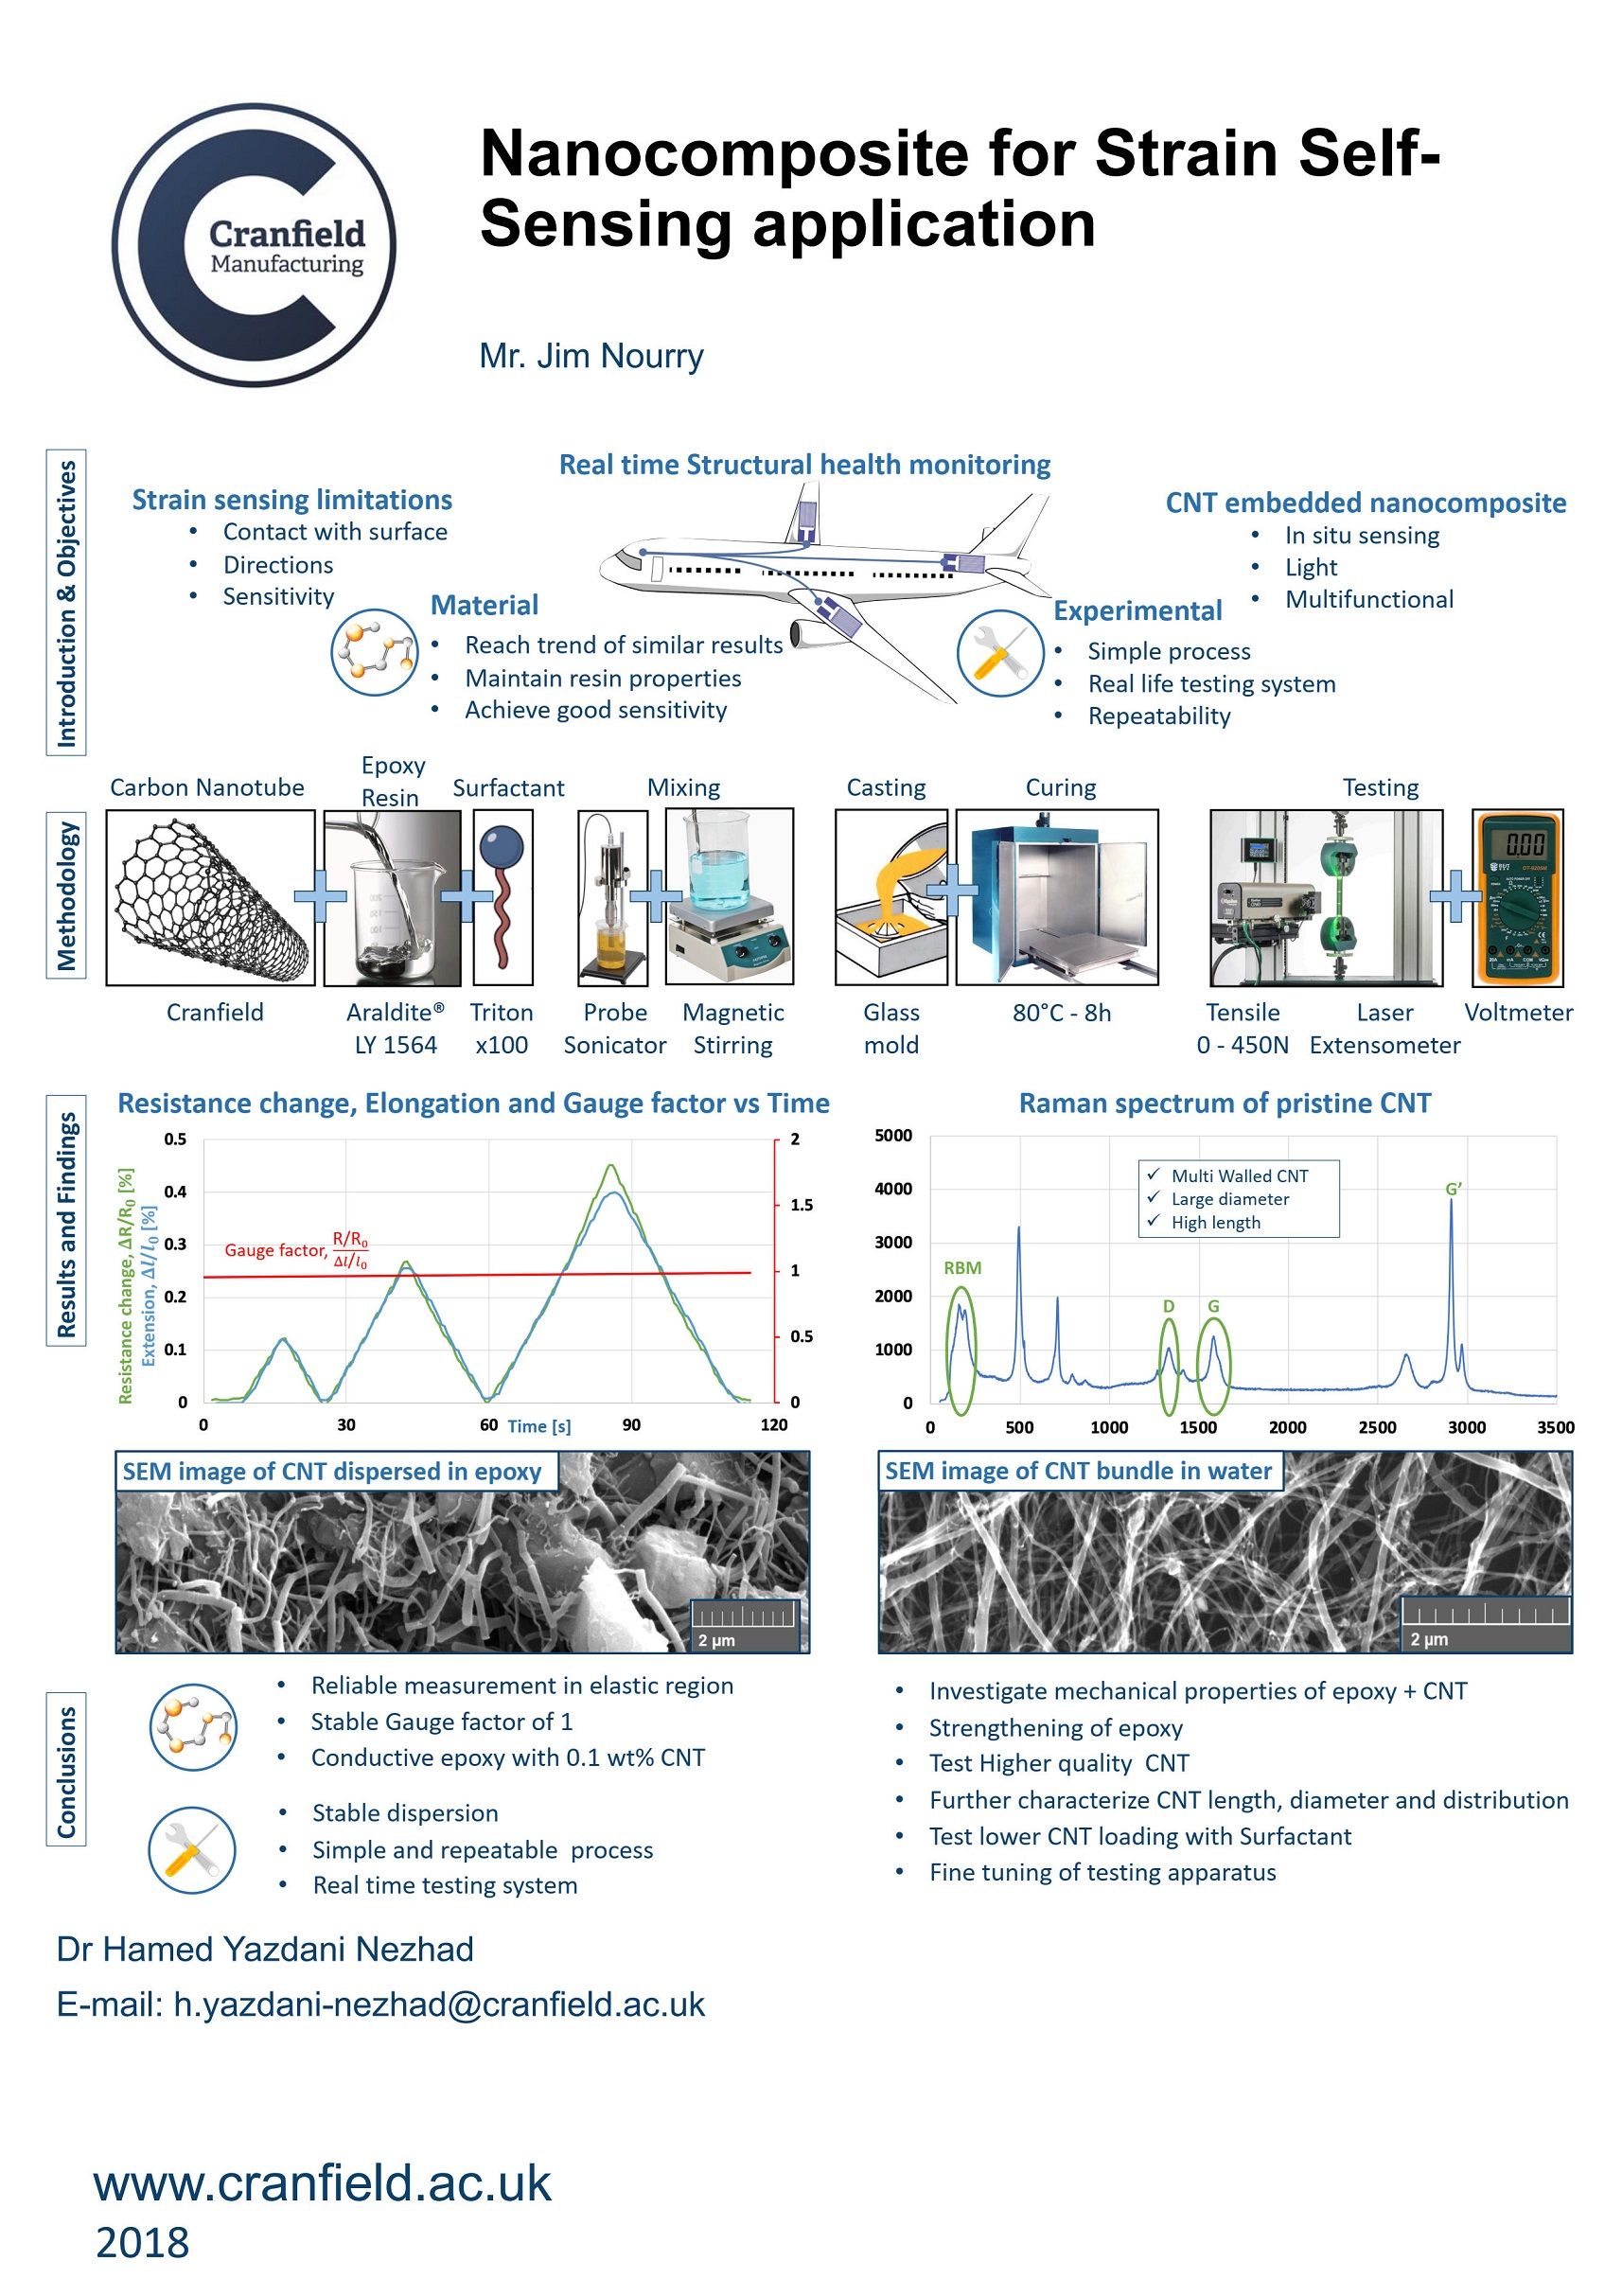 Nanocomposite for strain self-sensing application poster